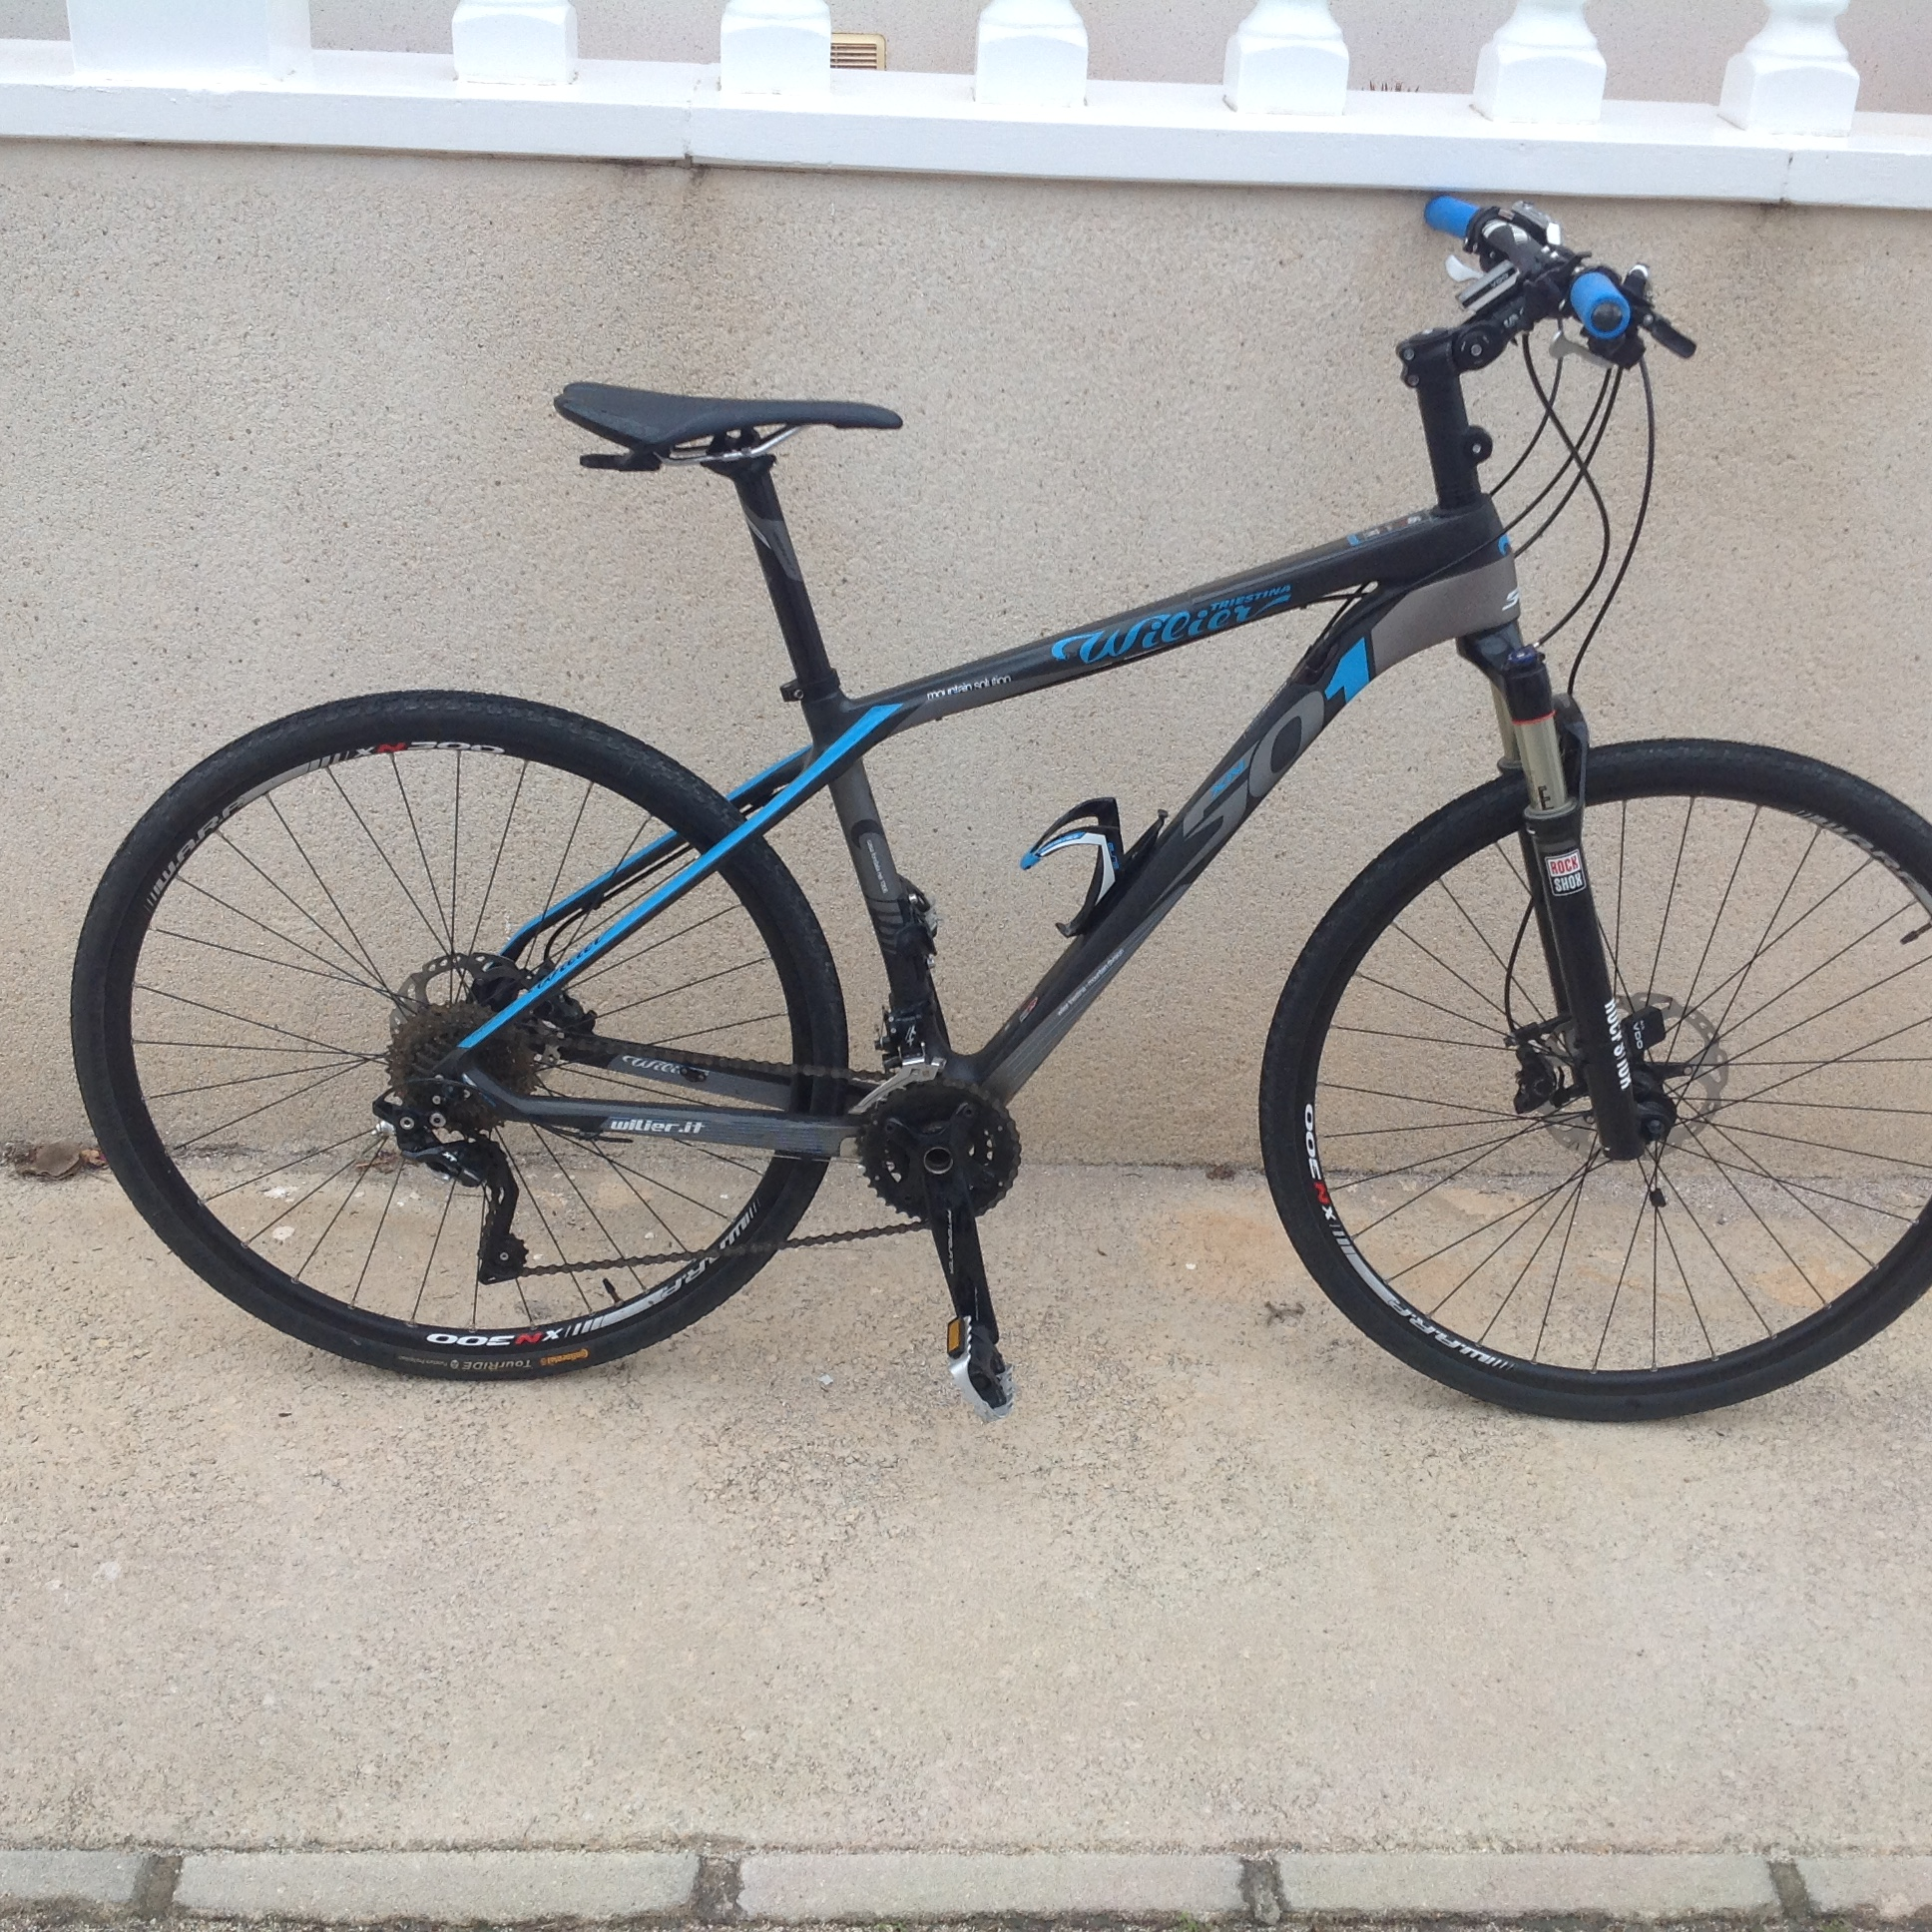 For sale: Carbon Mountain Bike